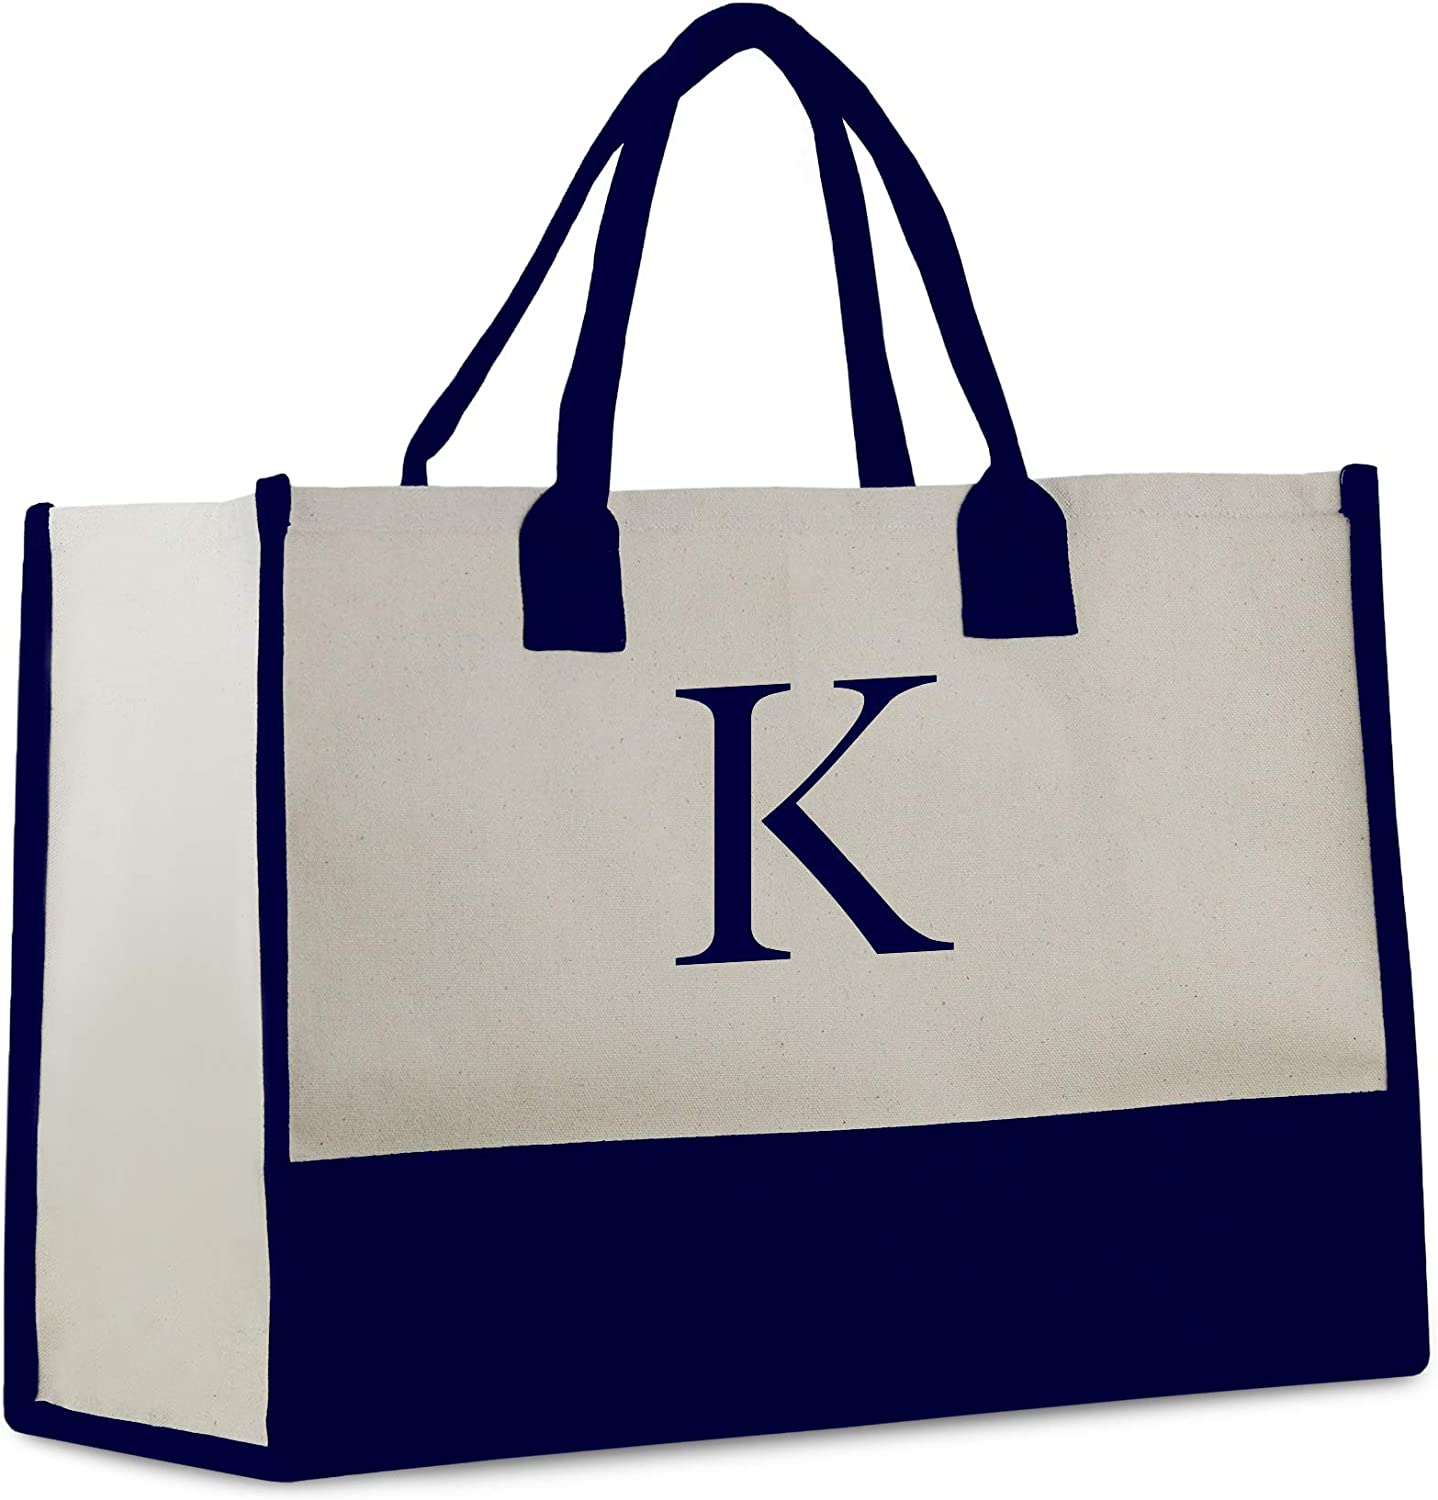 Personalized Gift Monogram Initial 100% Cotton Bag Recommendation wit Chic Max 71% OFF Tote